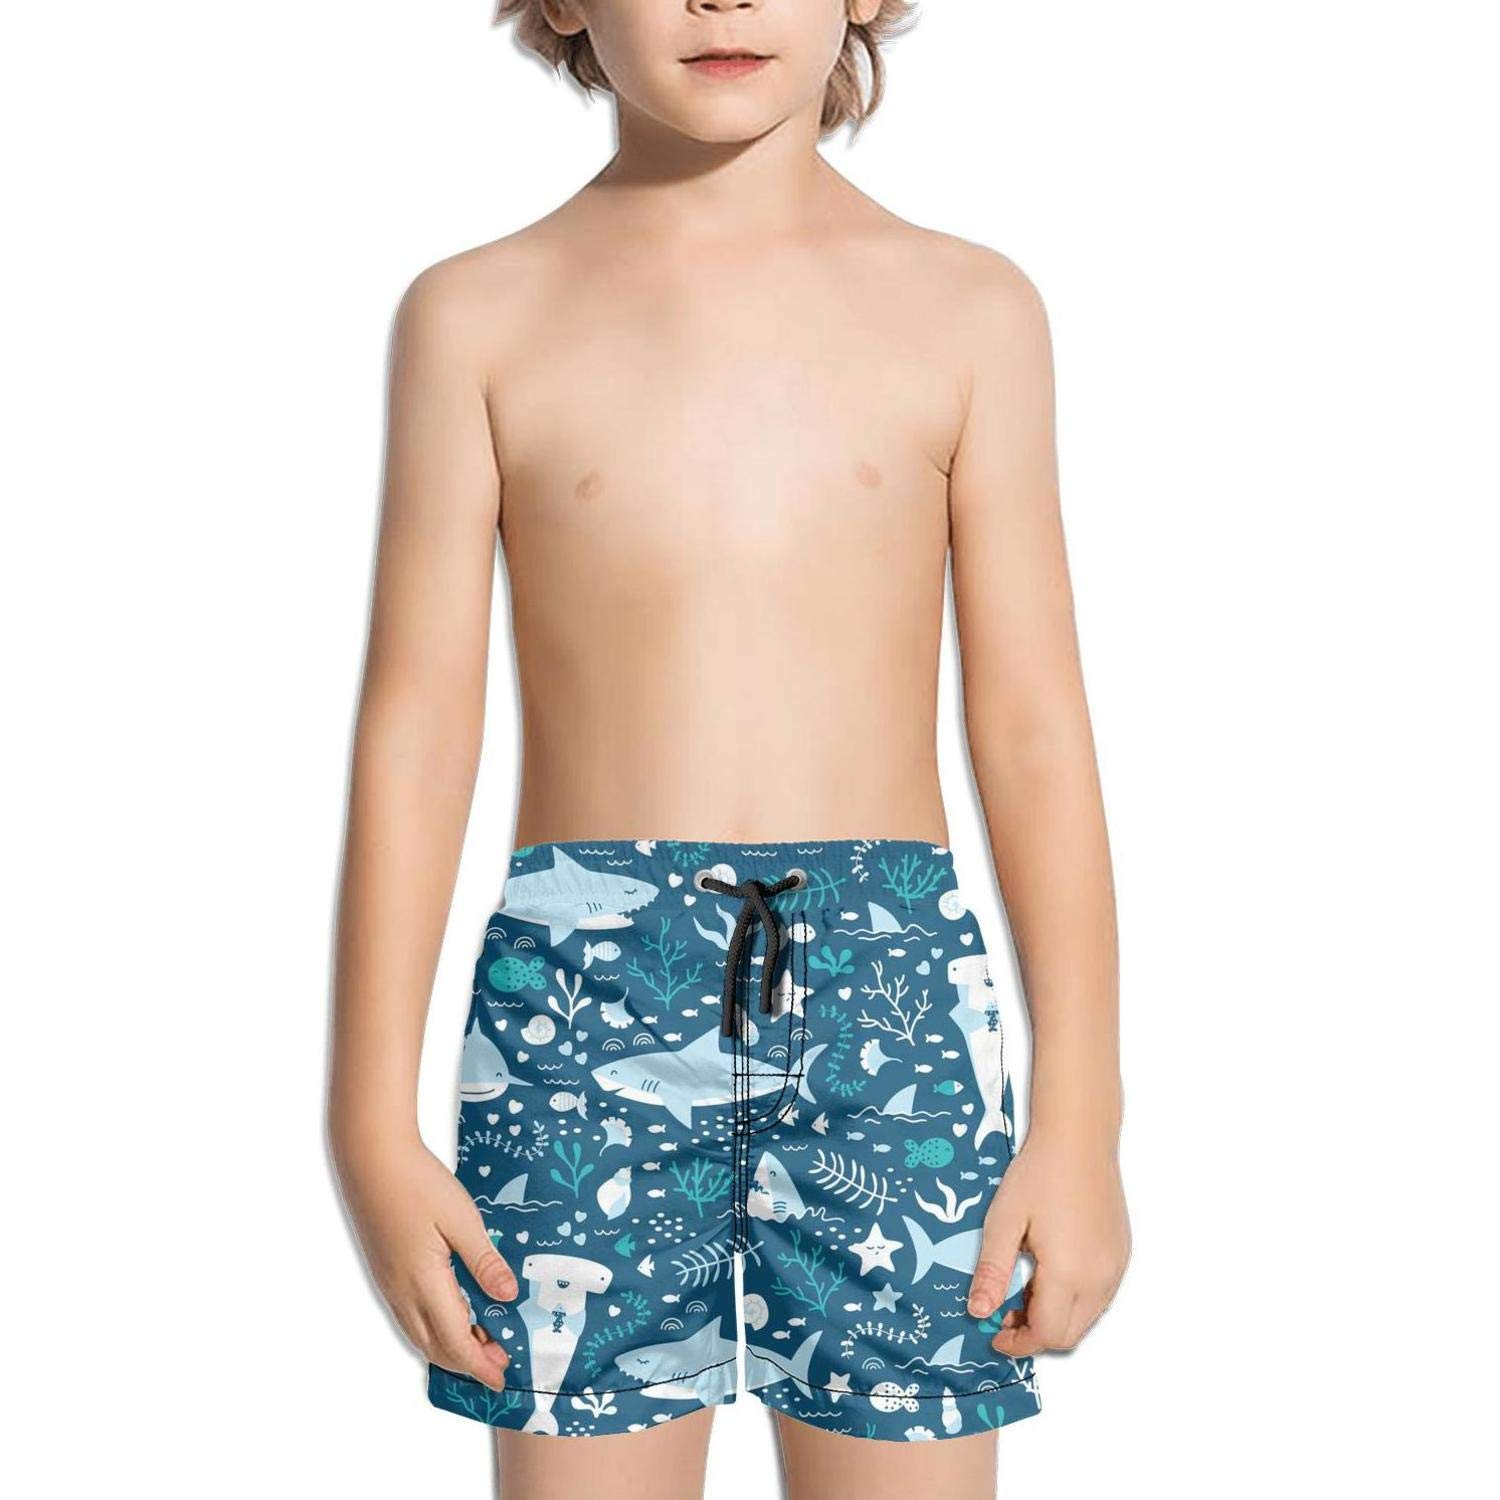 Boys Kids Happy Sharks by Modern Quick Dry Beach Swim Trunk Unique Swimsuit Beach Shorts with Pocket